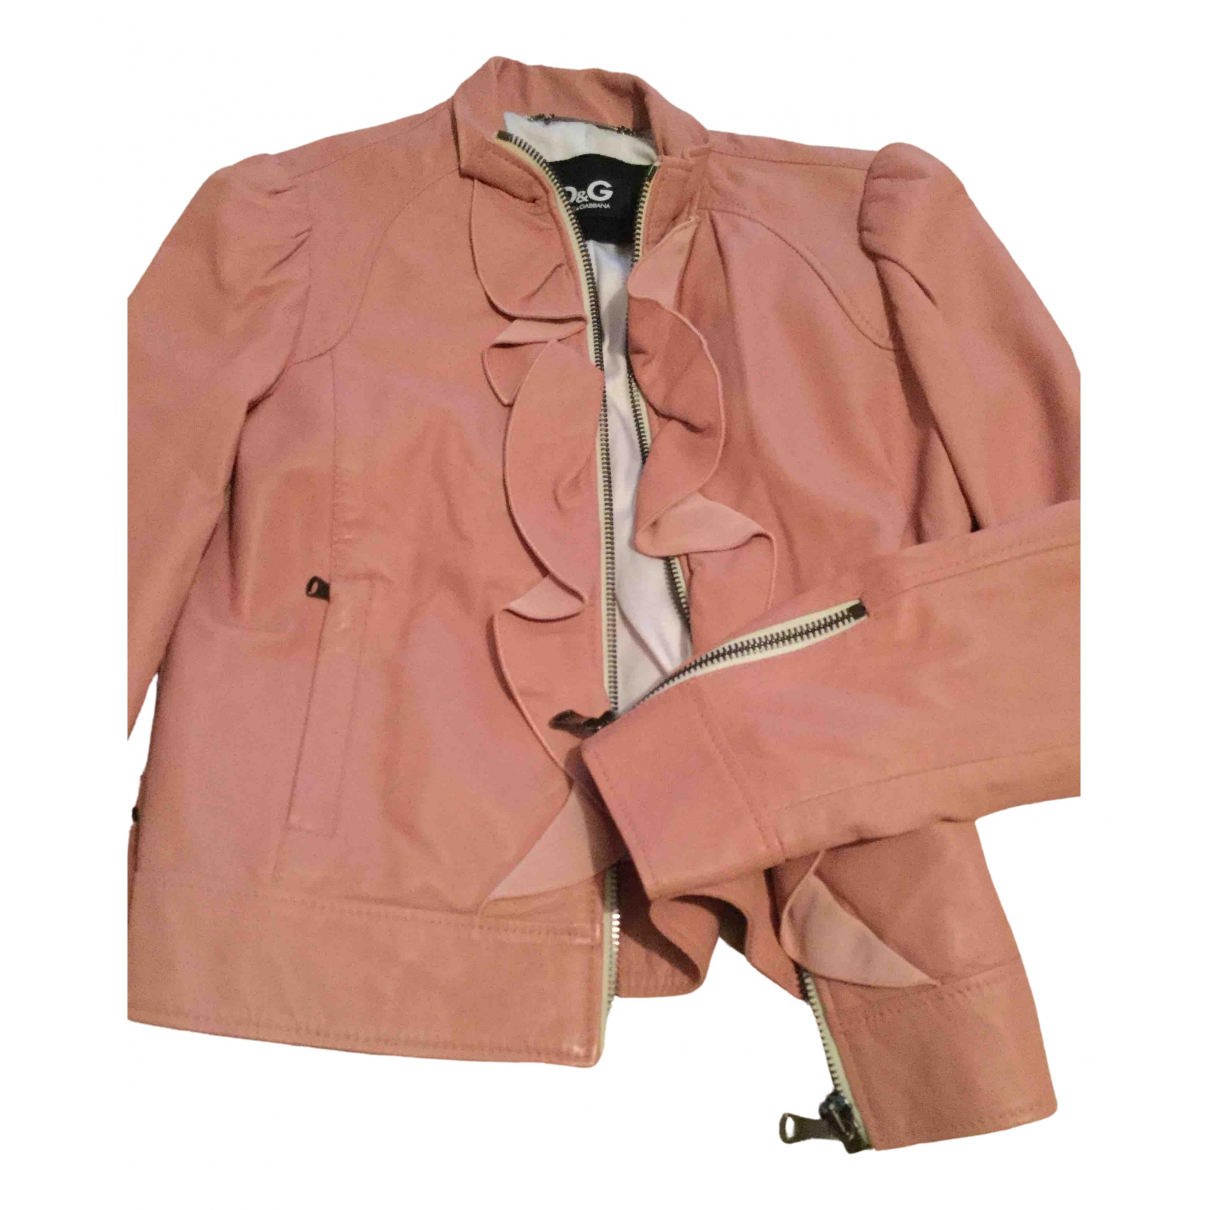 D&g \N Pink Leather jacket for Women 10 UK